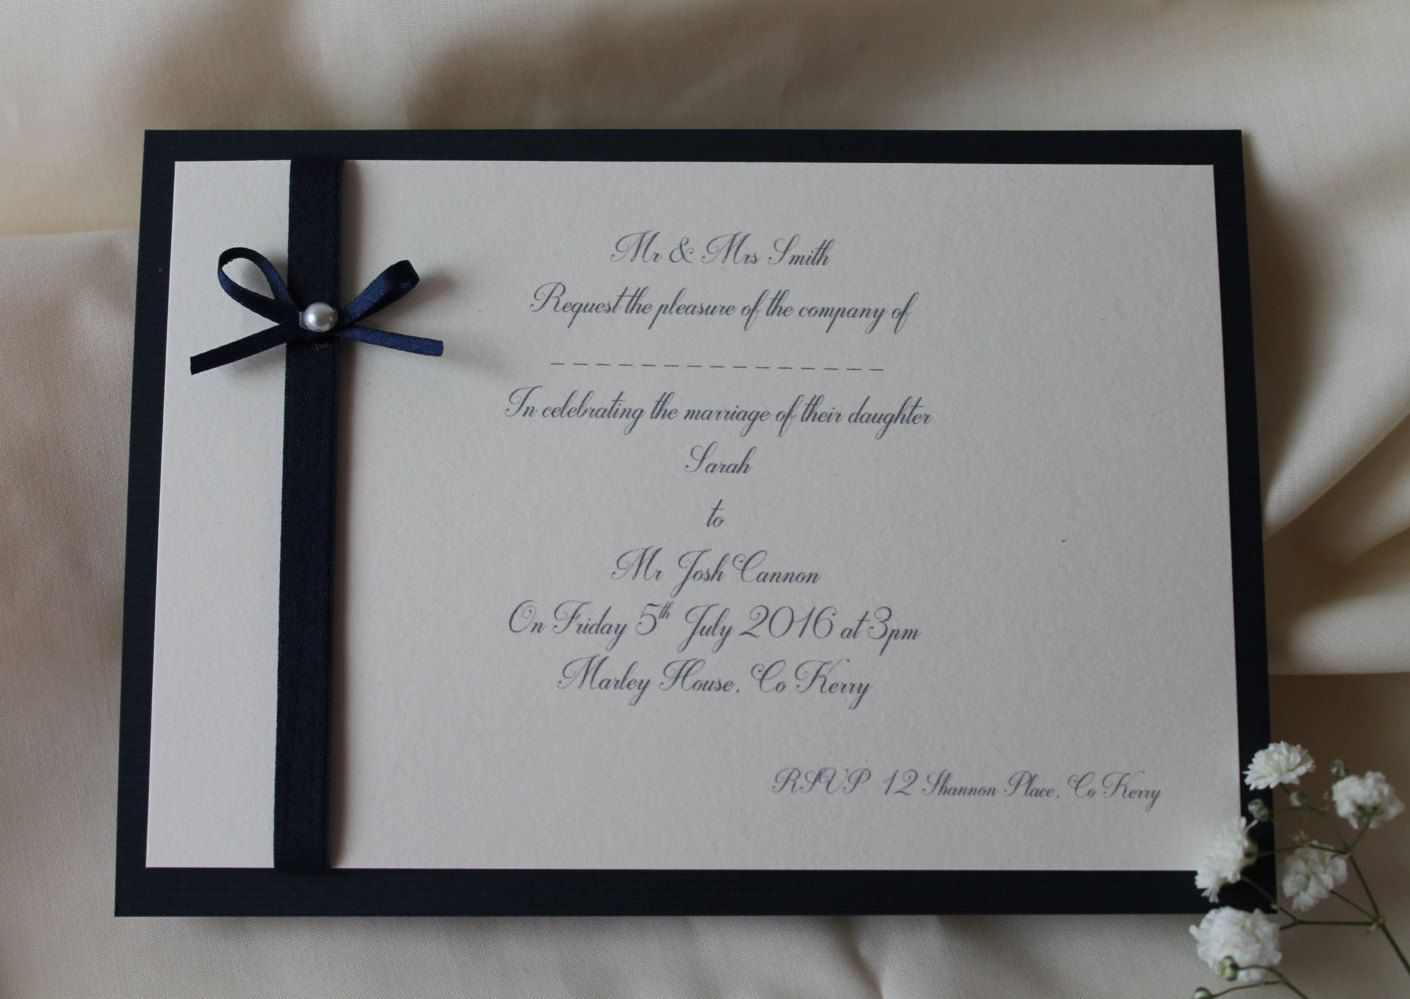 what to include in diy wedding invitations%0A Simple and Elegant Wedding Invitations by Fromthismomentcards on Etsy